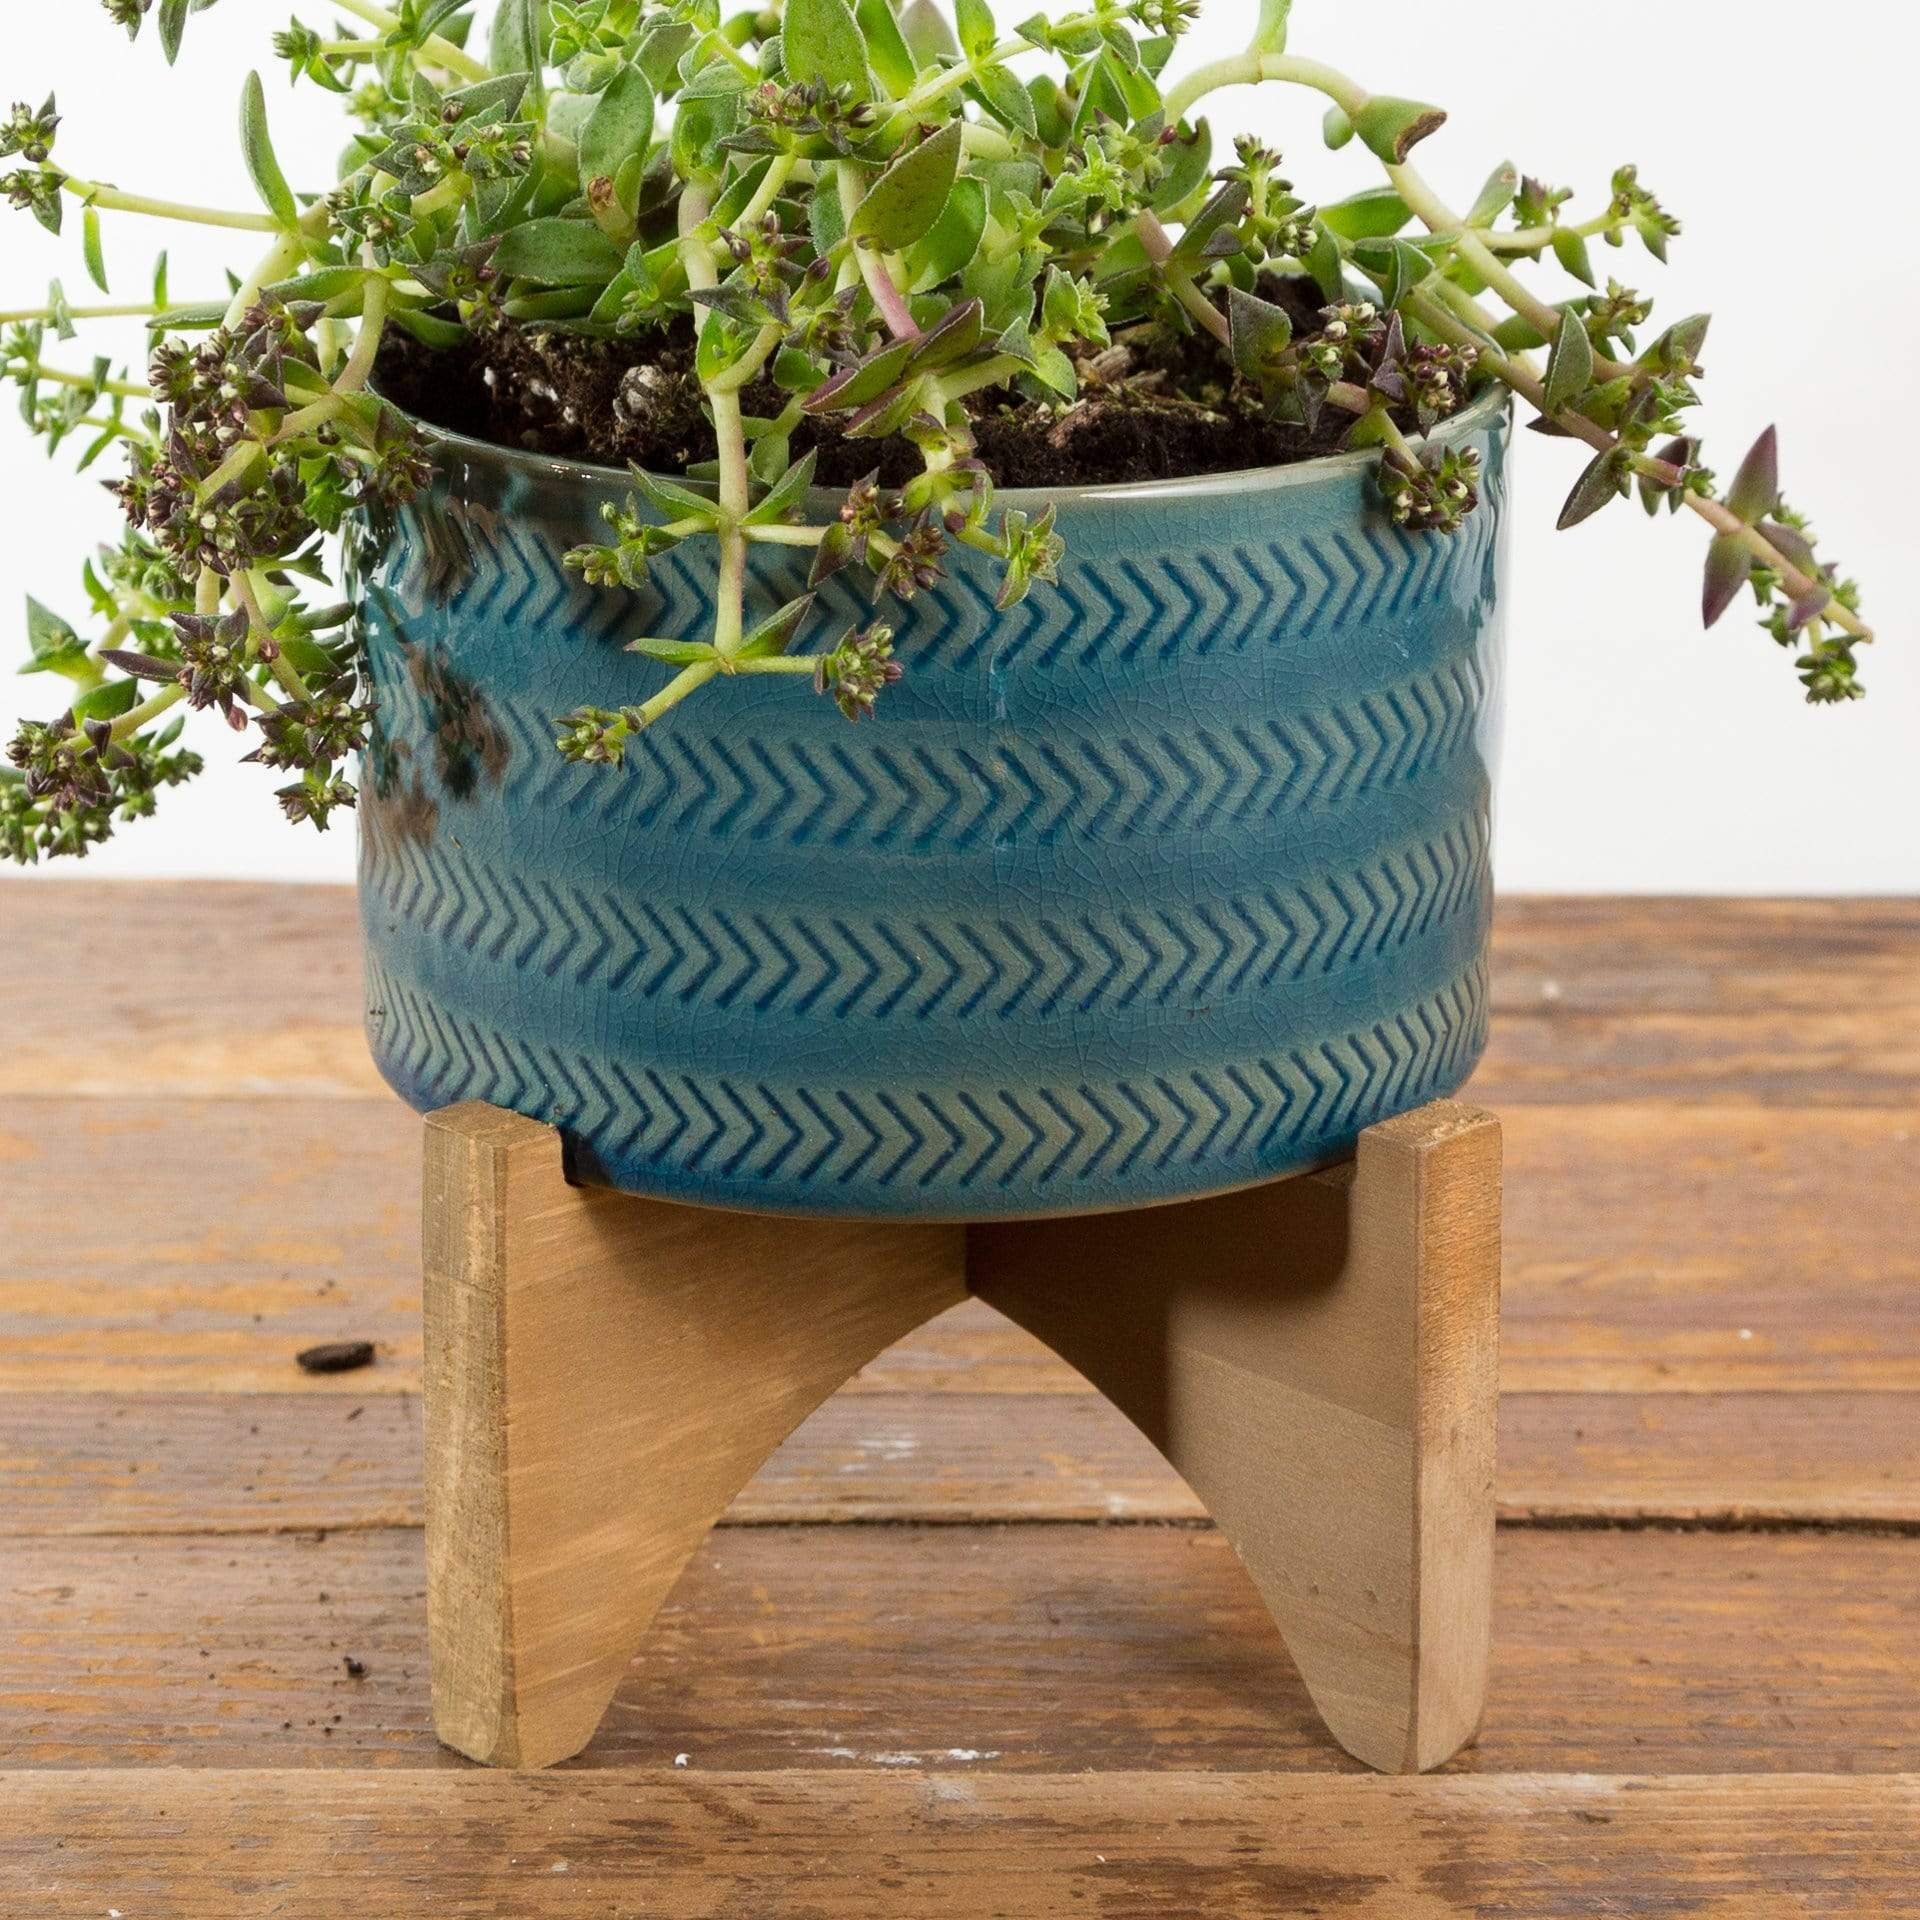 Banded Planter - Urban Sprouts